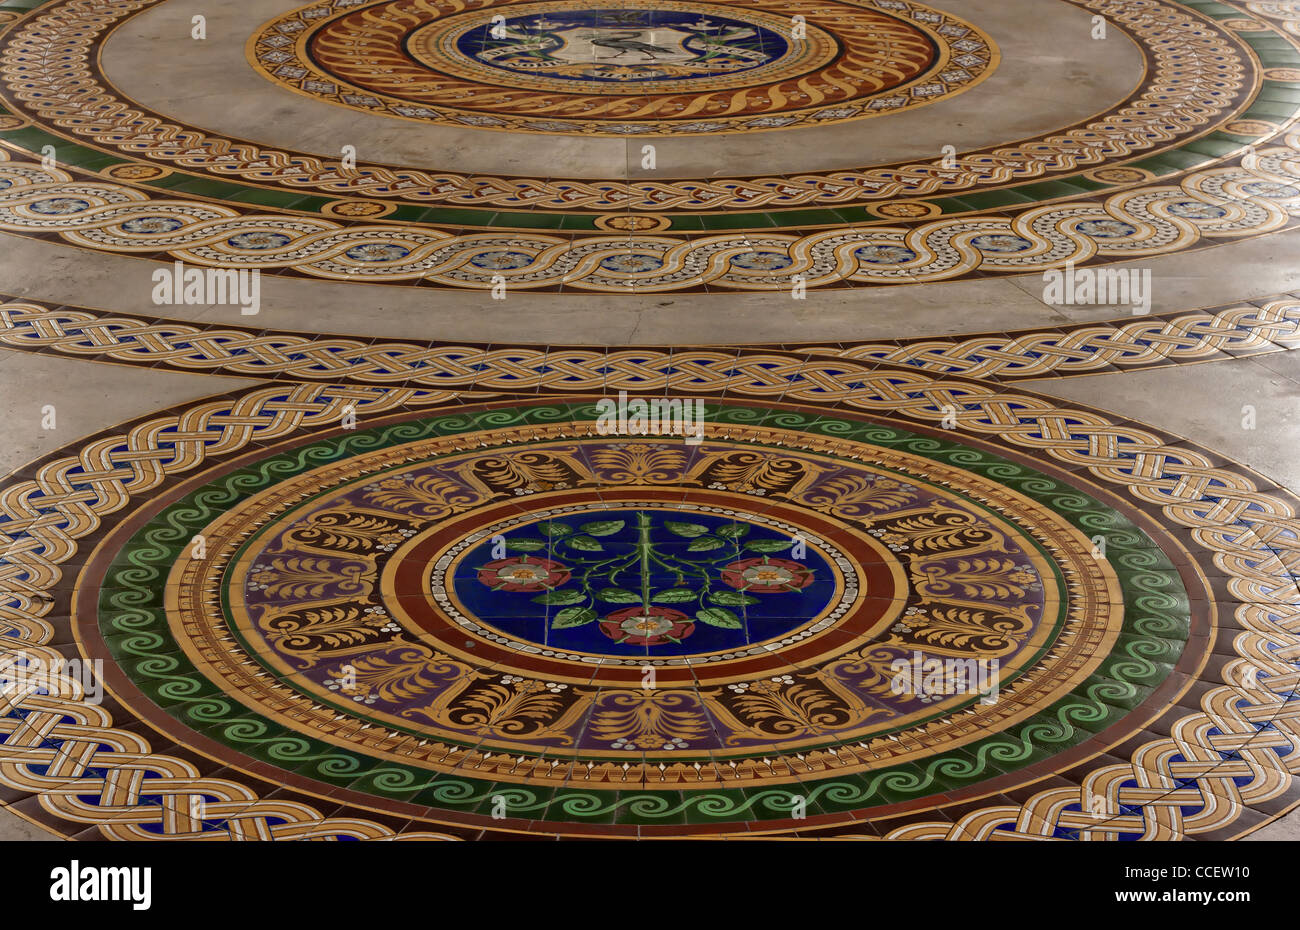 Minton Tiles Stock Photos Minton Tiles Stock Images Alamy